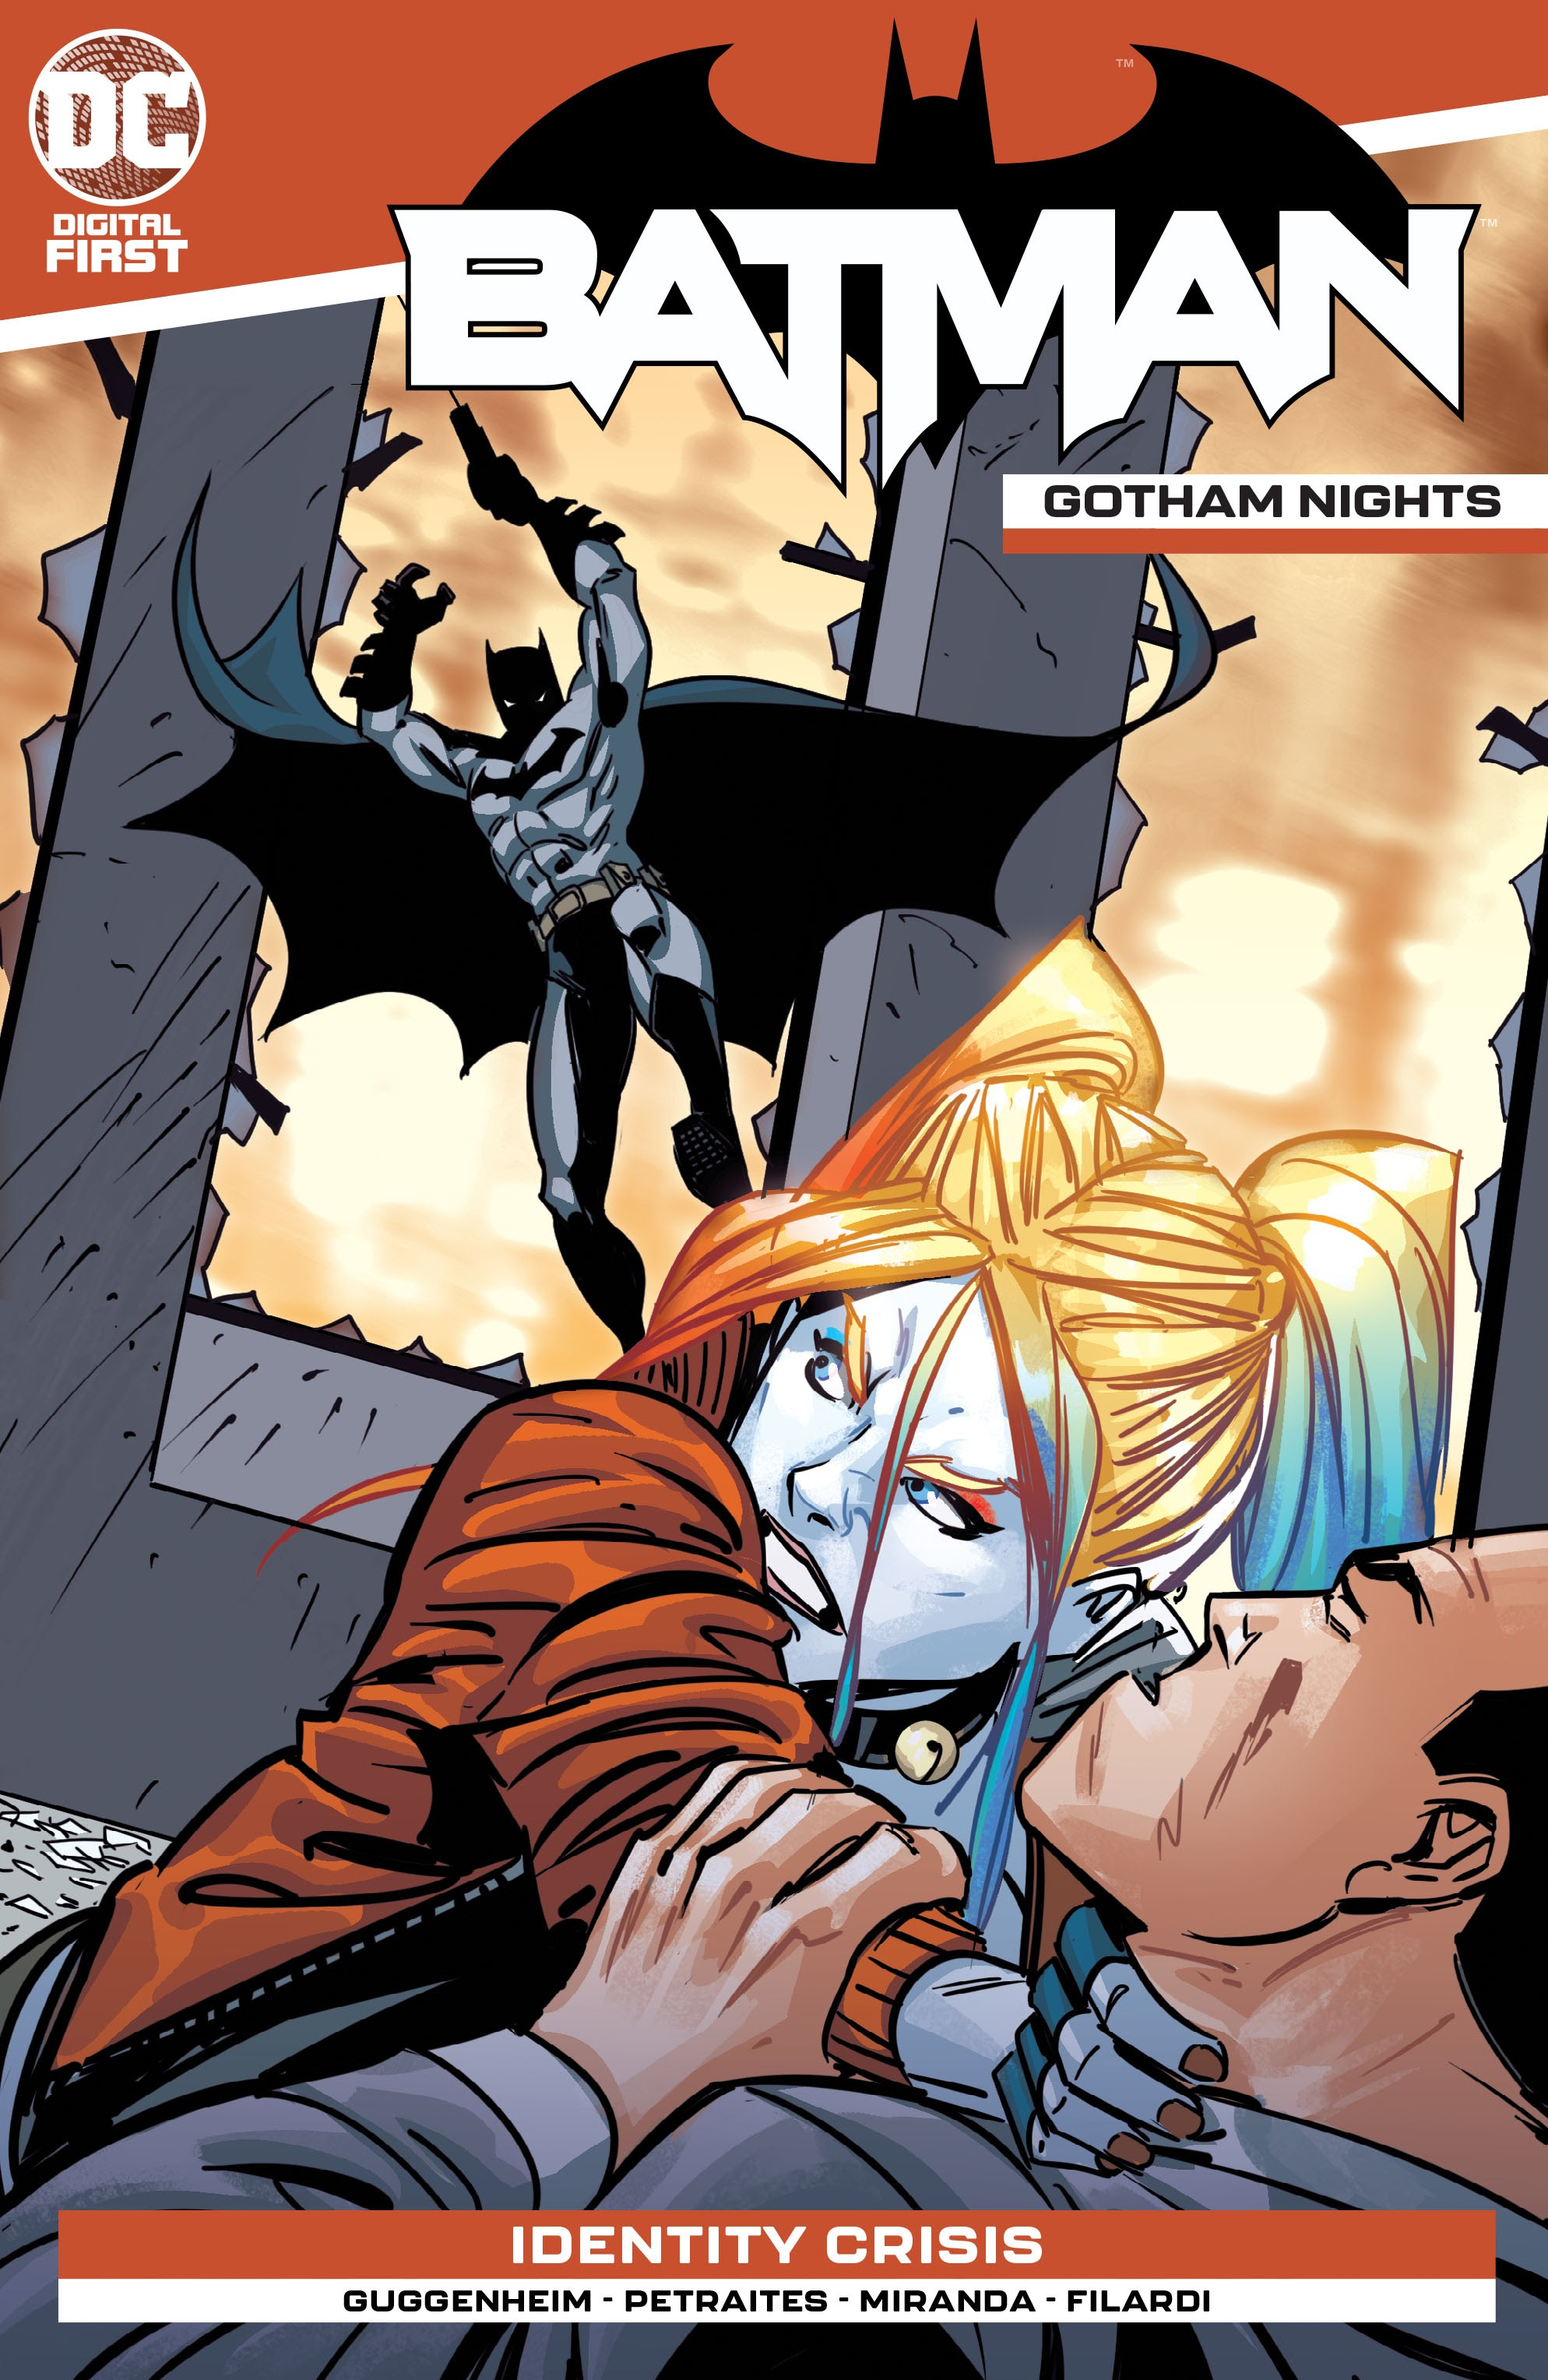 Batman: Gotham Nights Vol 1 20 (Digital)